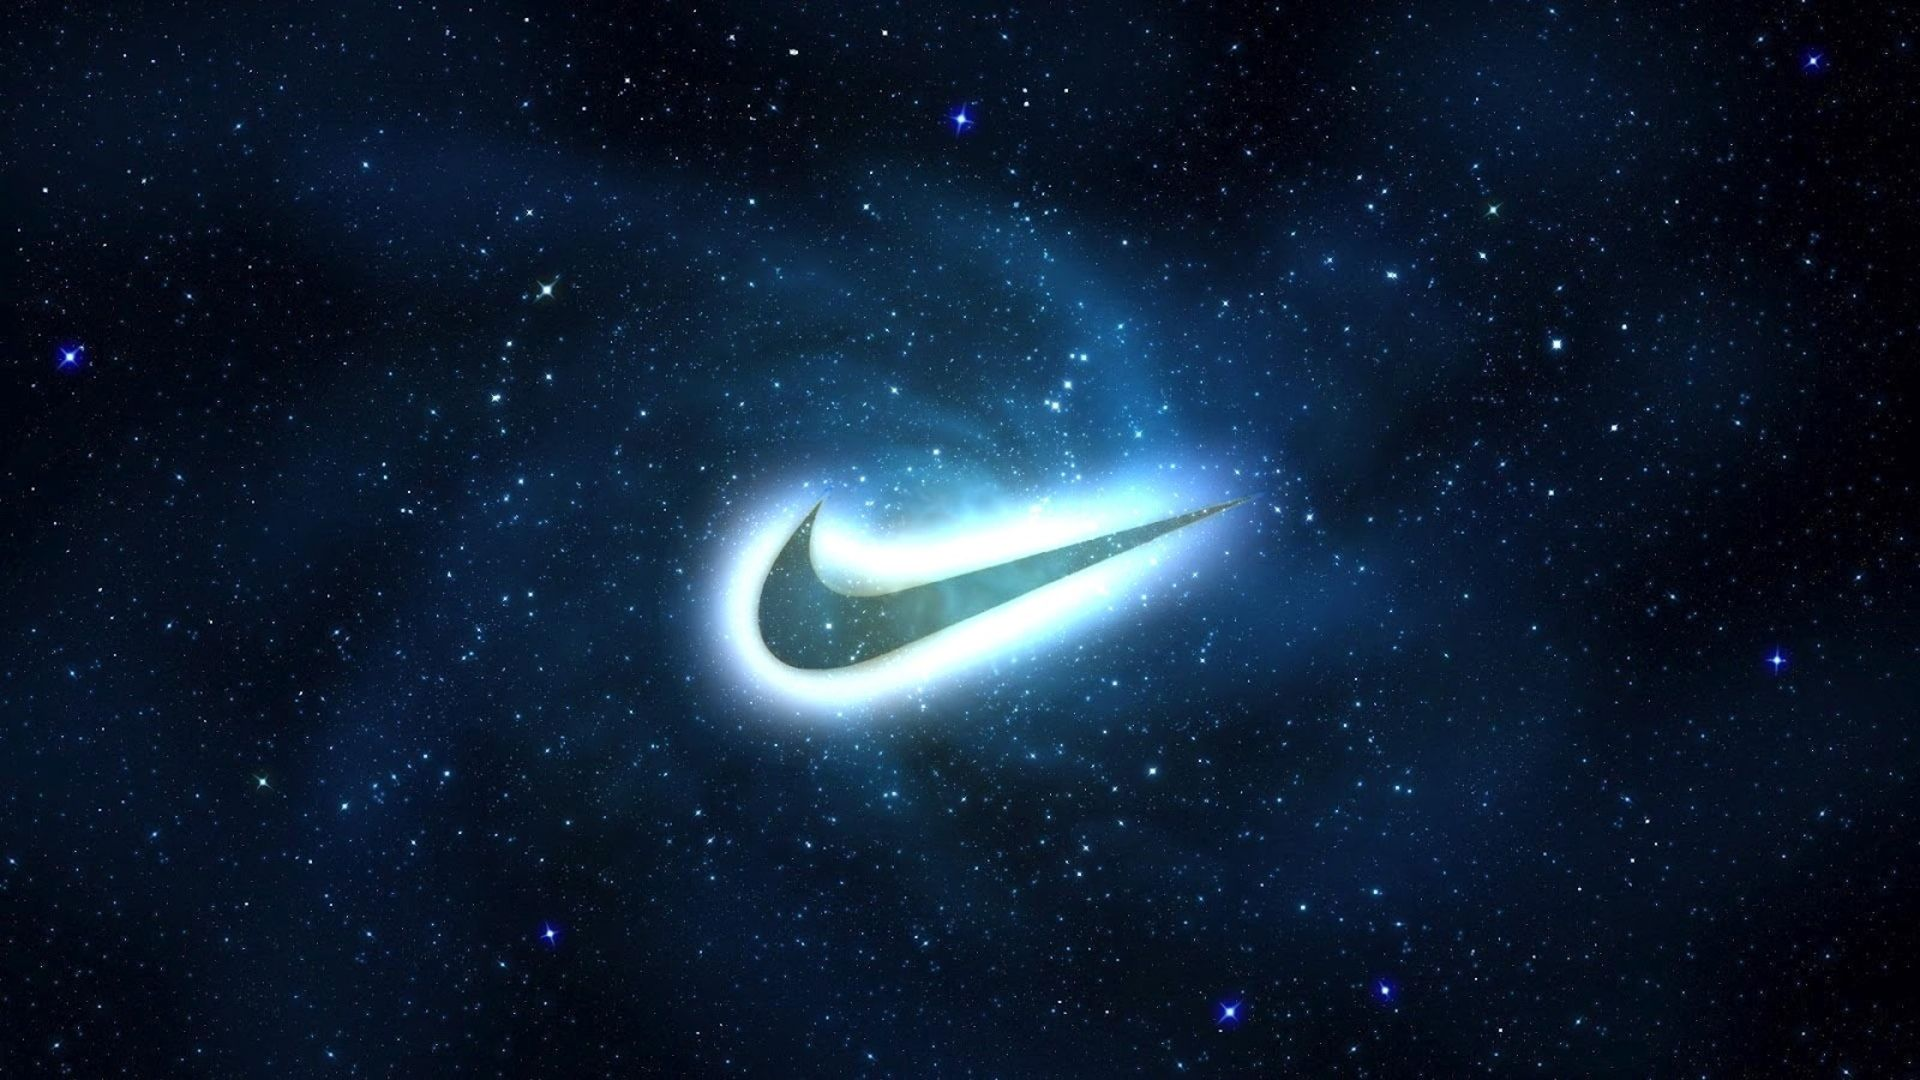 Nike Wallpaper Desktop